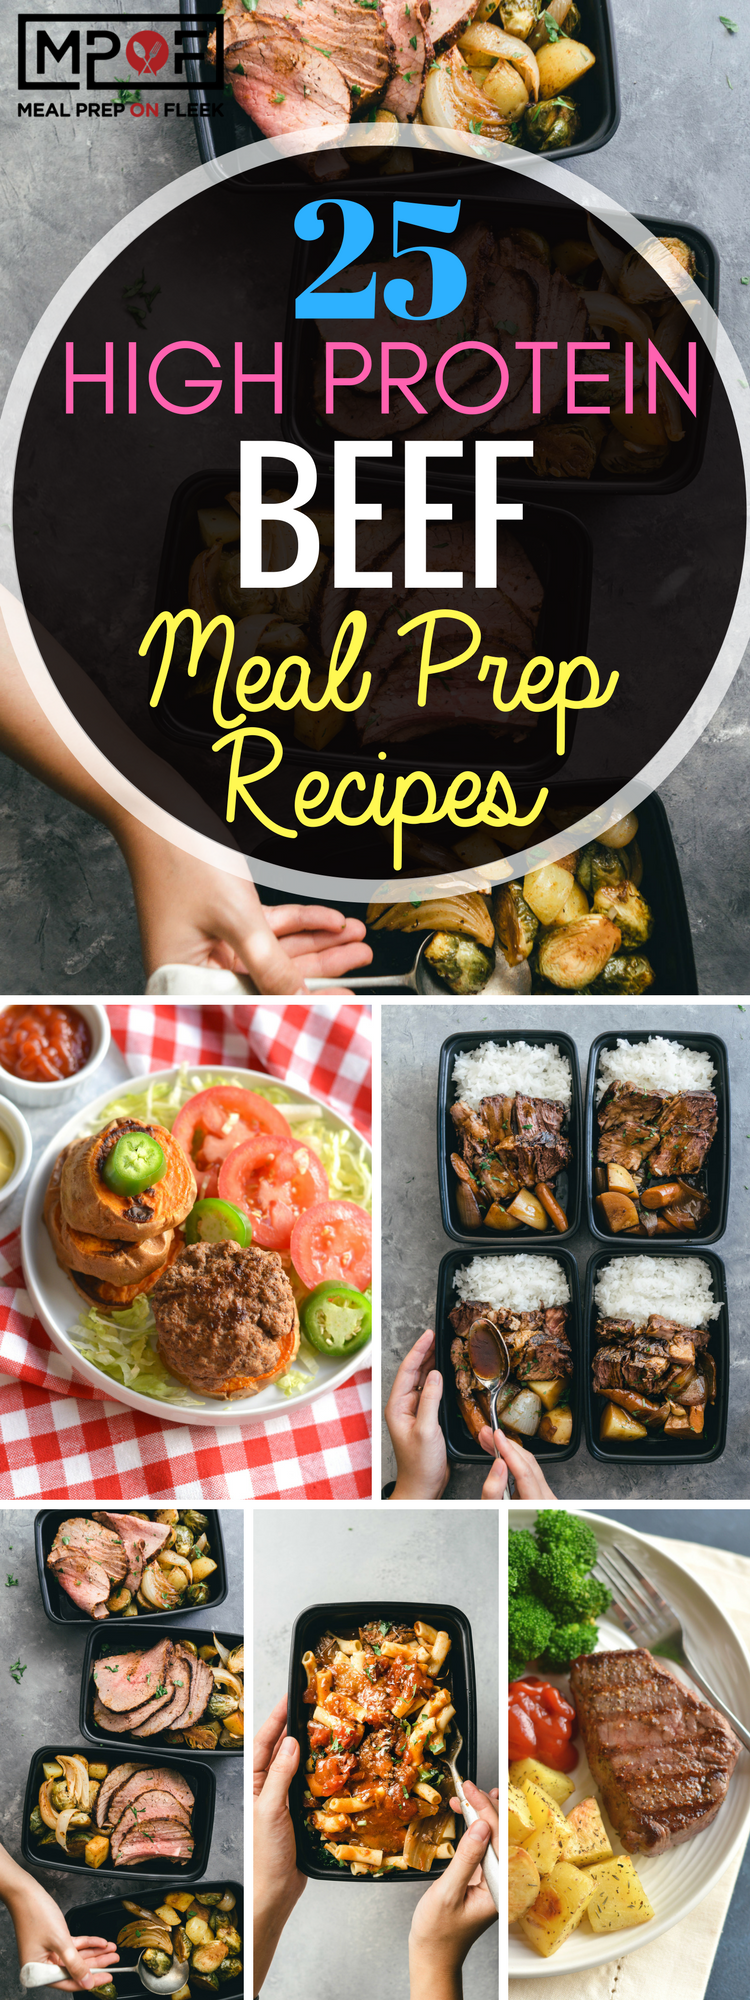 25 High Protein Beef Meal Prep Recipes - Meal Prep on Fleek™